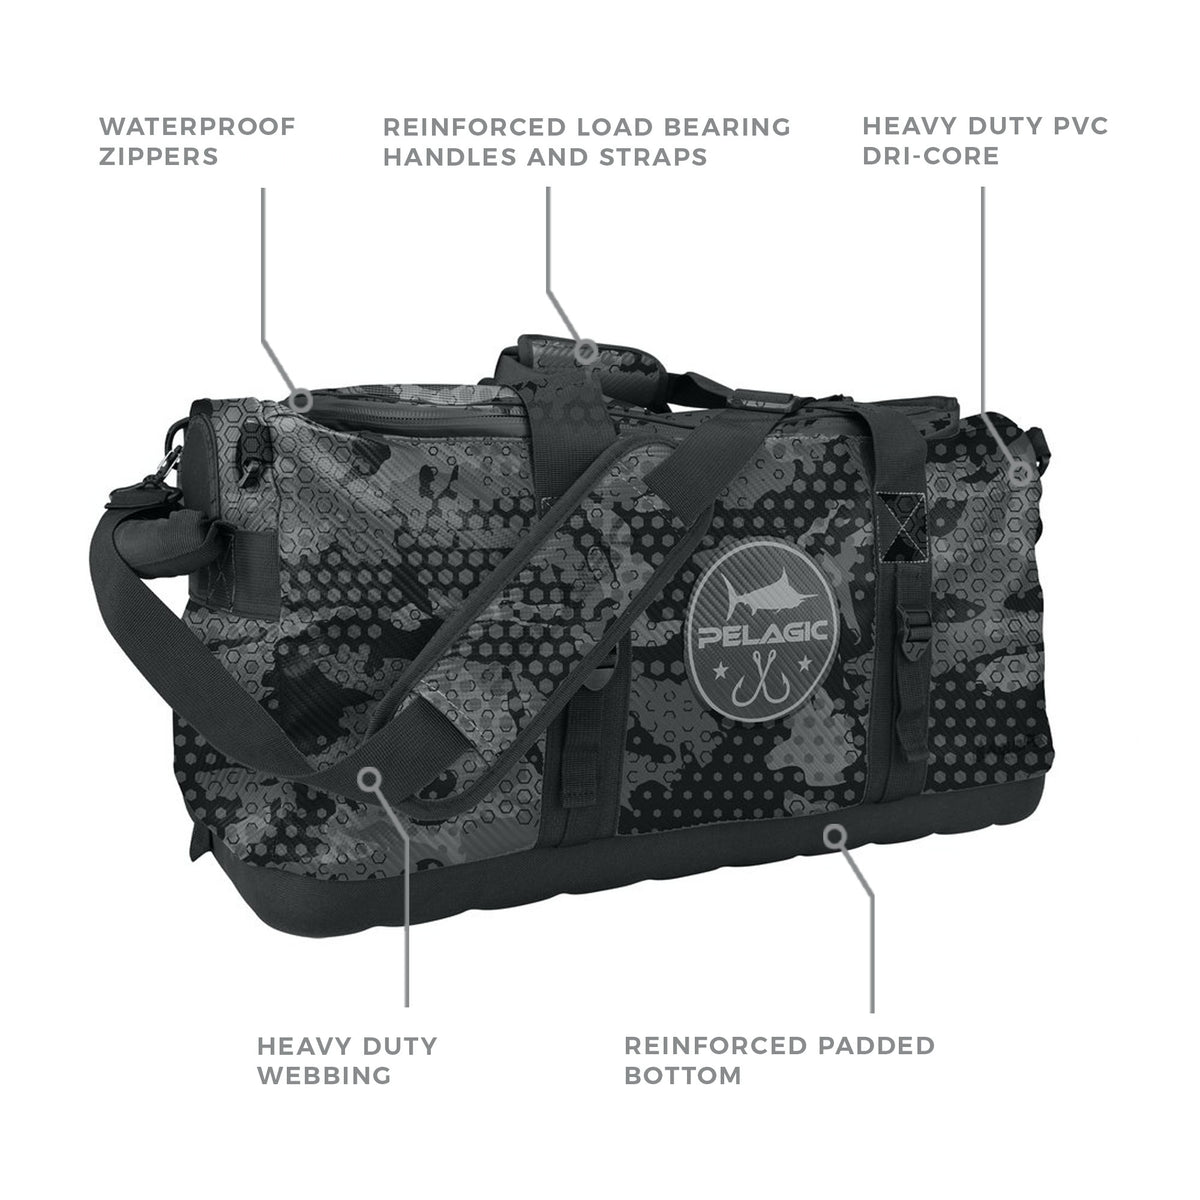 50L Aquapak Duffel Bag Big Image - 2